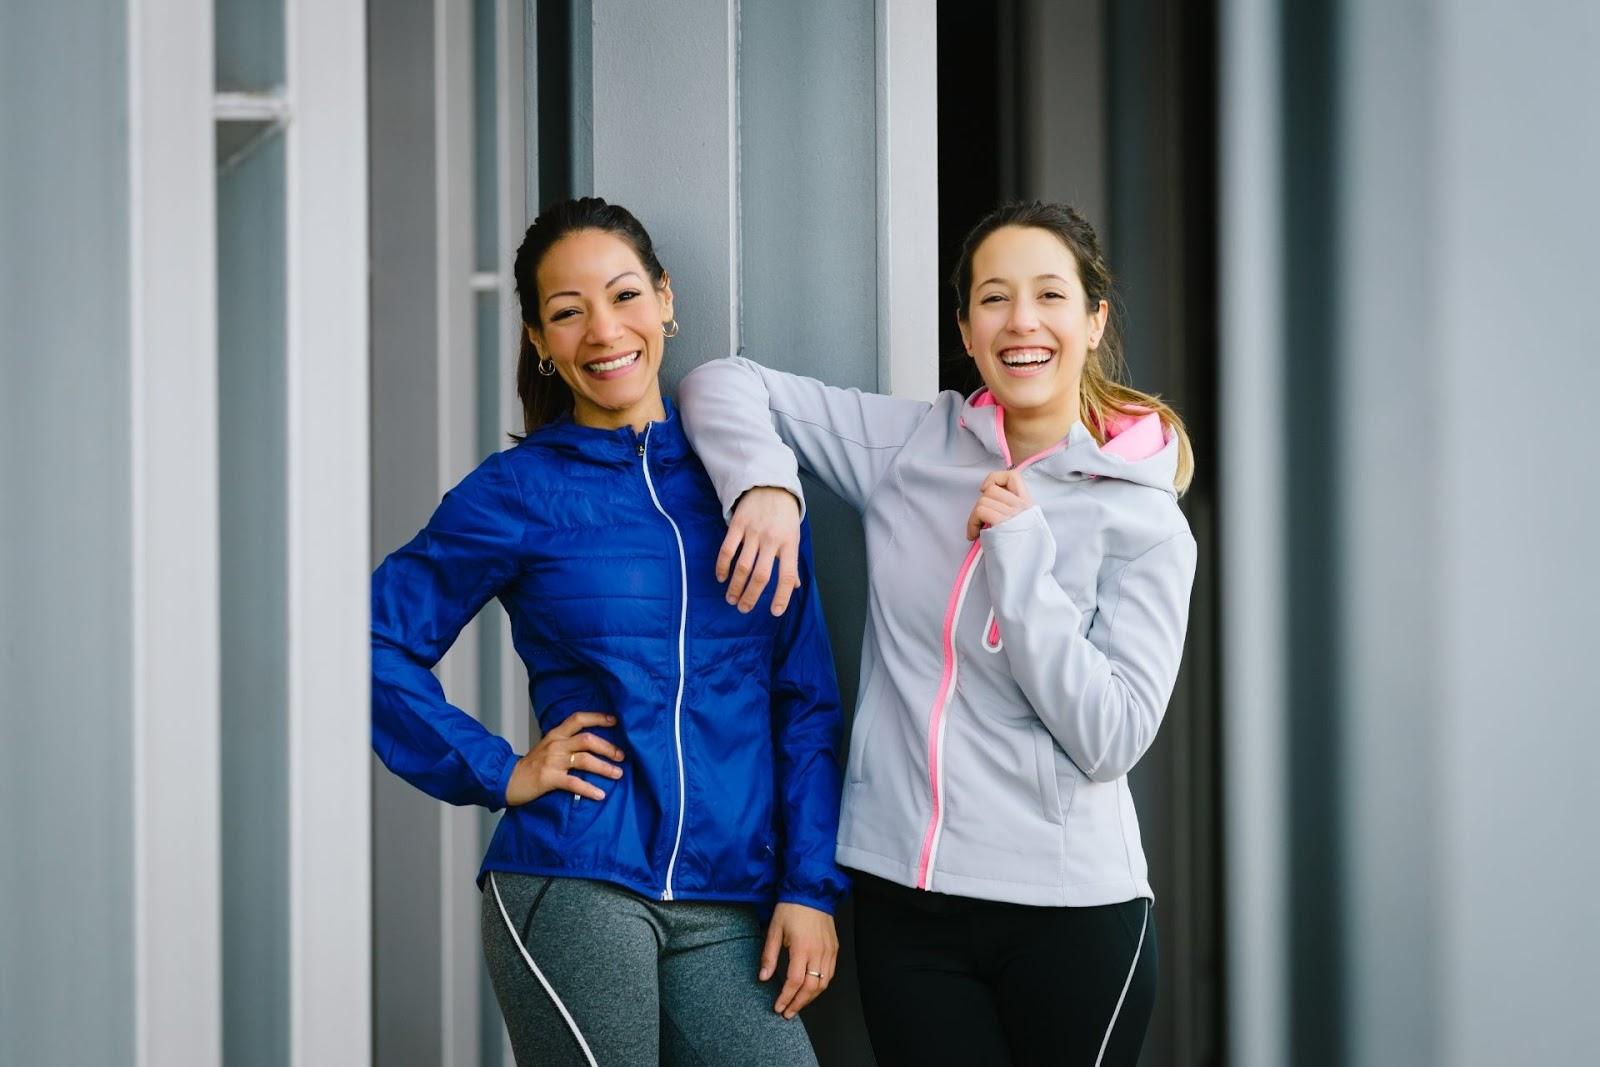 two woman standing outside in athletic outfits